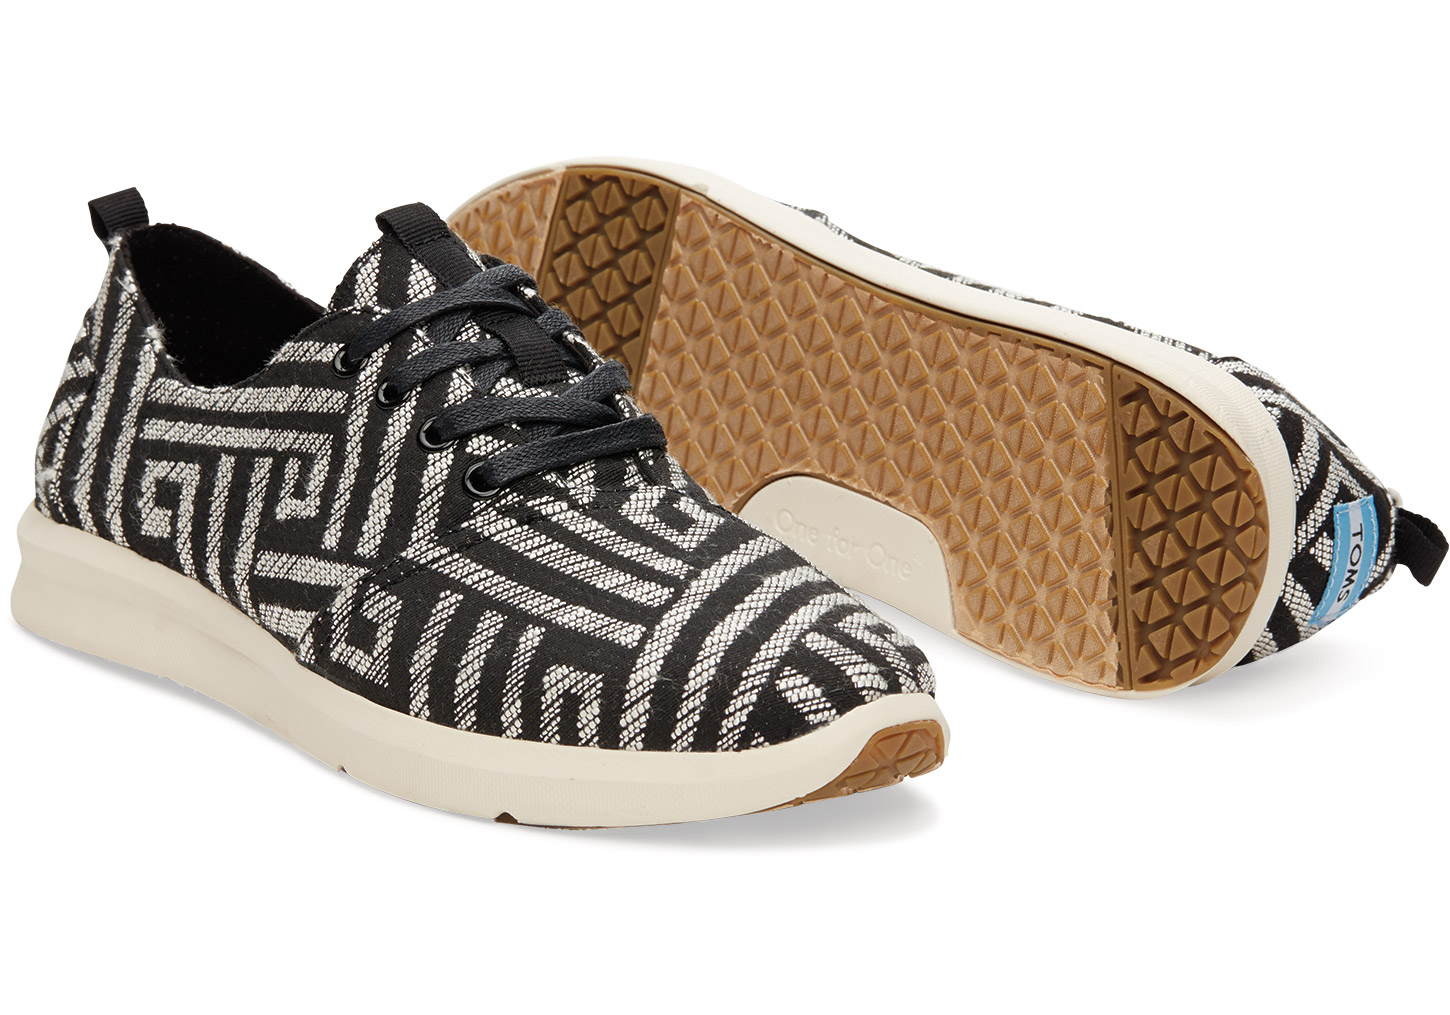 Toms mens shoes